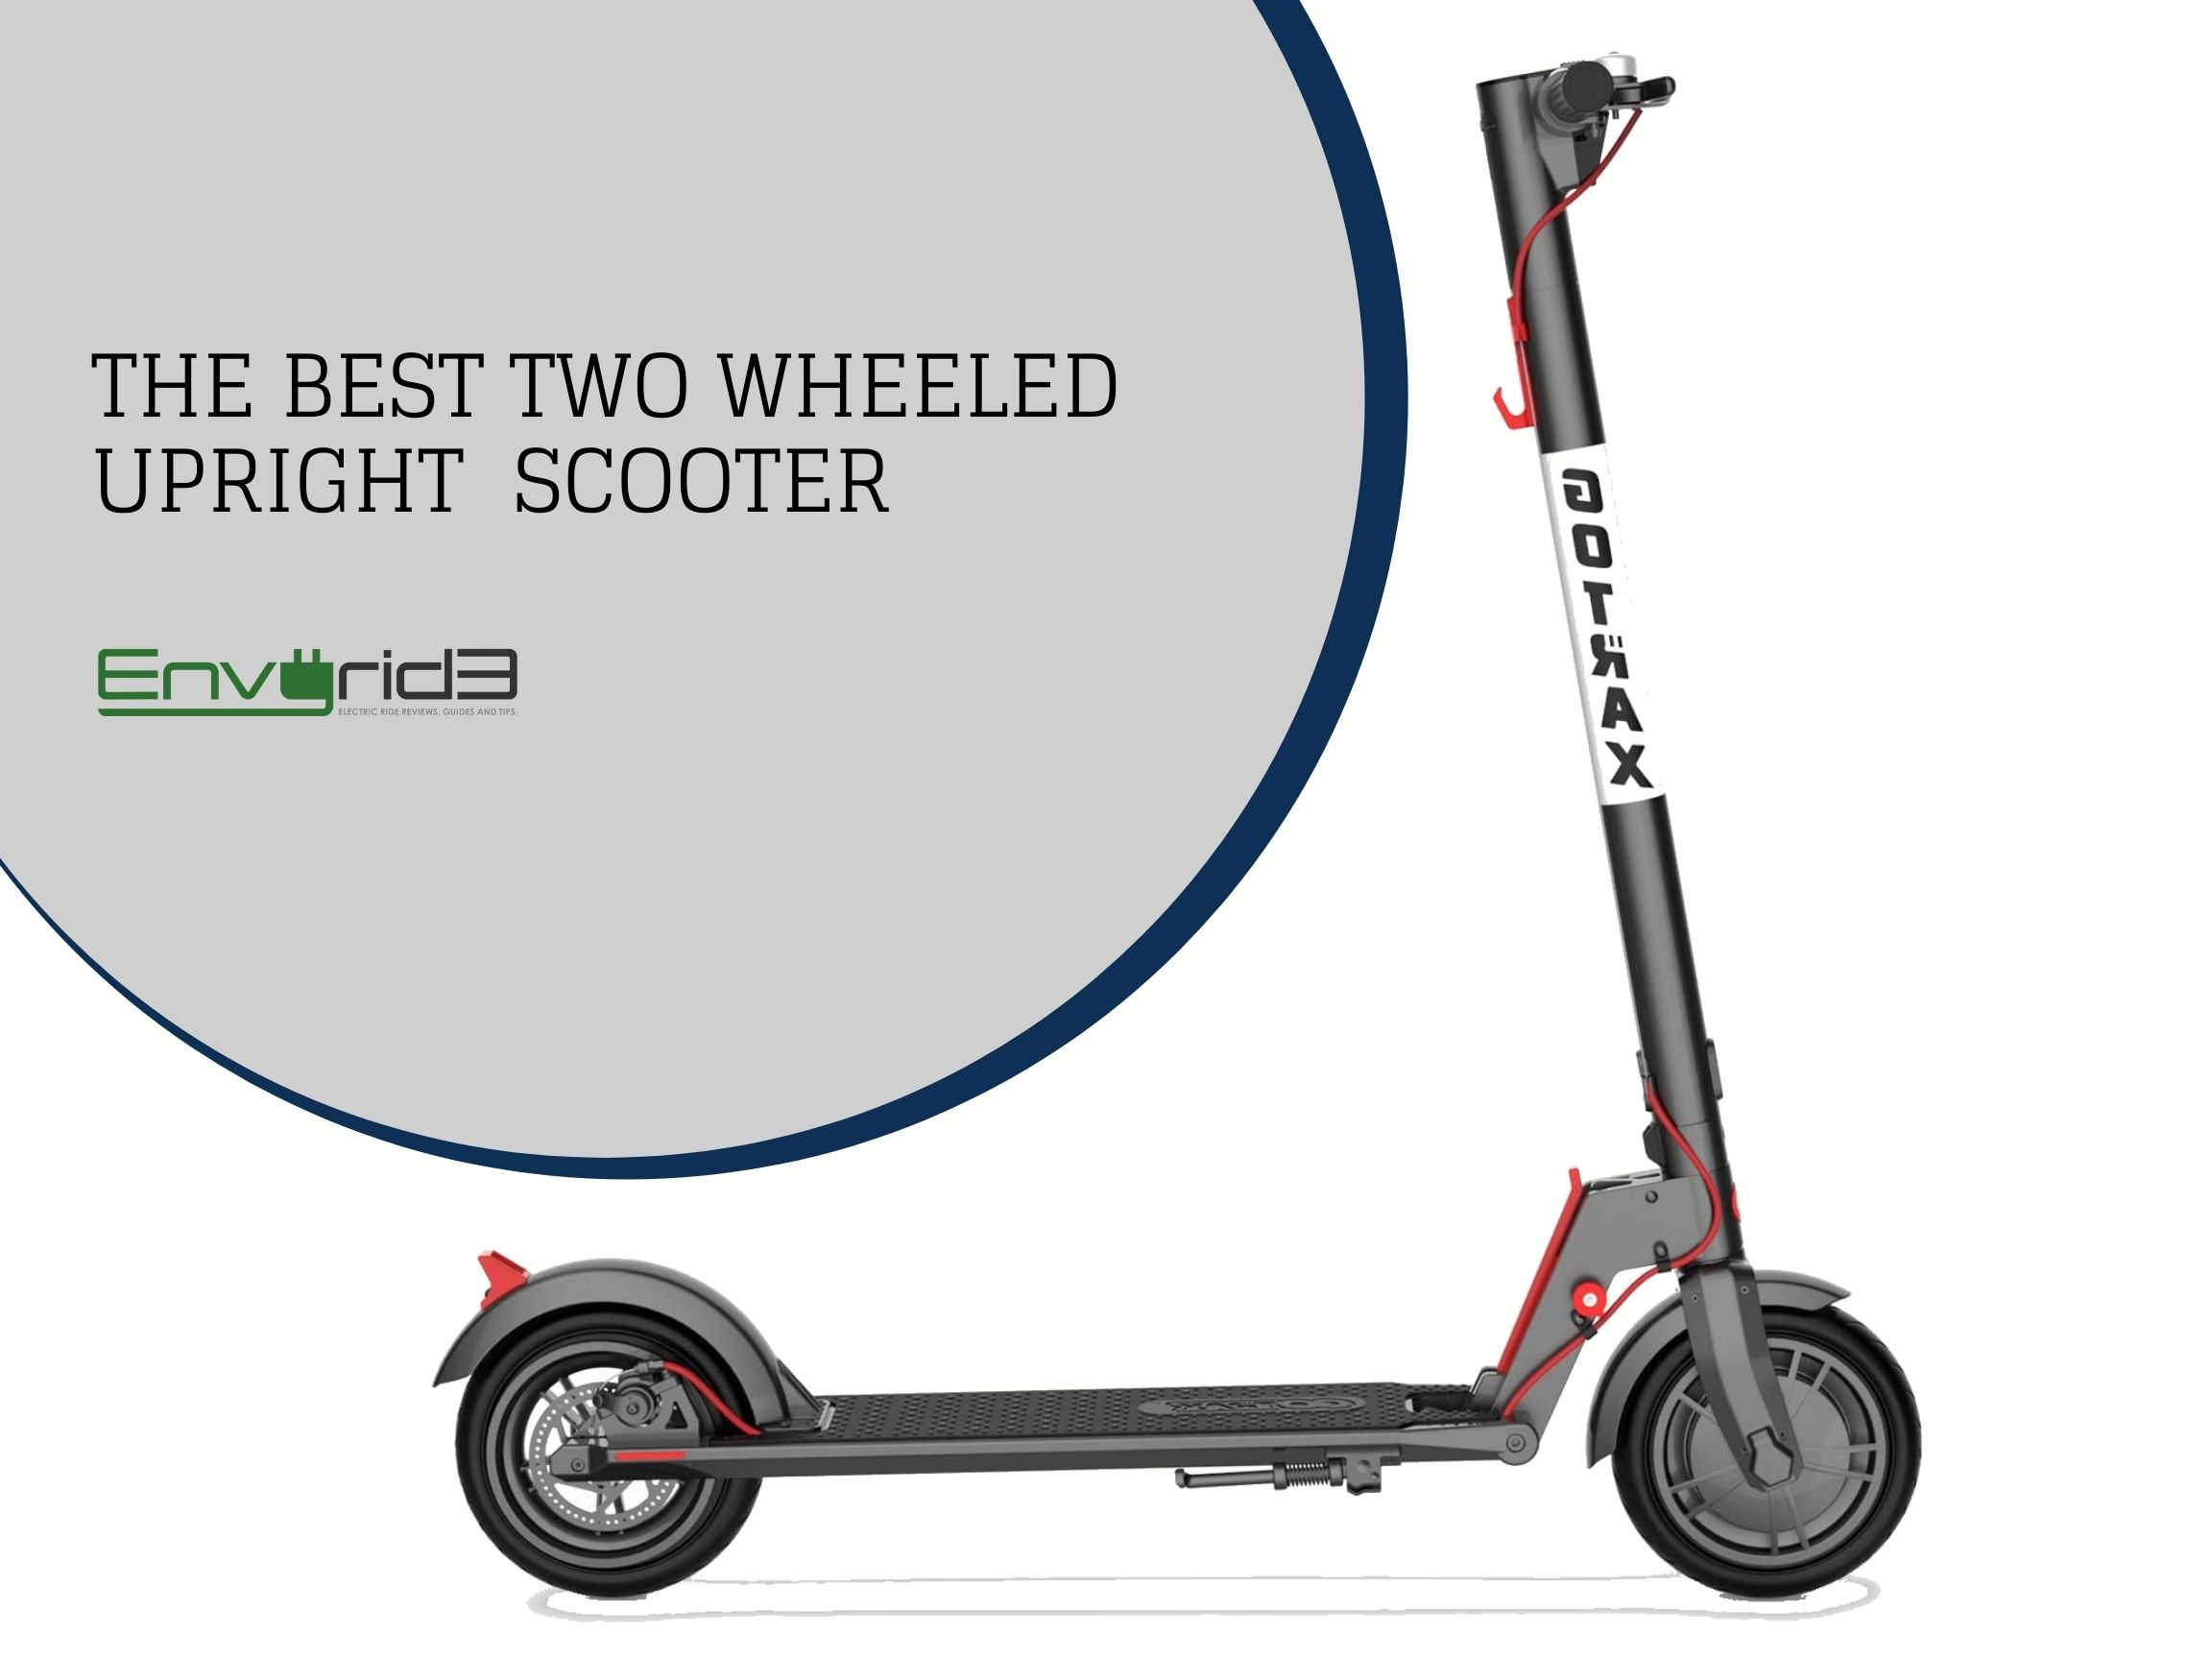 the best two wheeled upright scooter